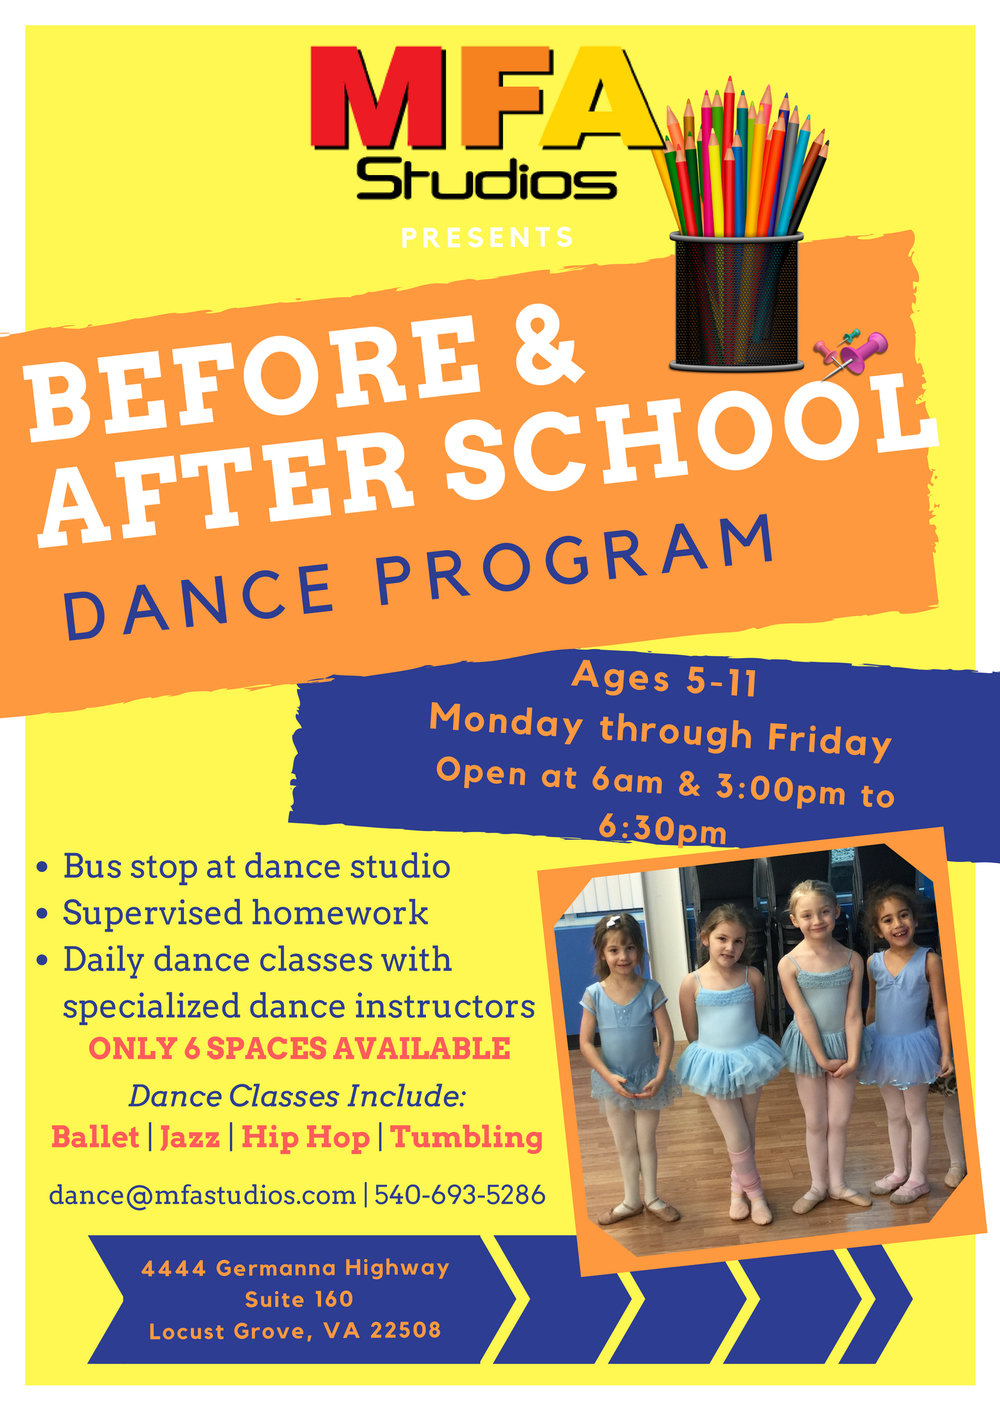 BeforeAfterSchoolDanceProgram2018.jpg